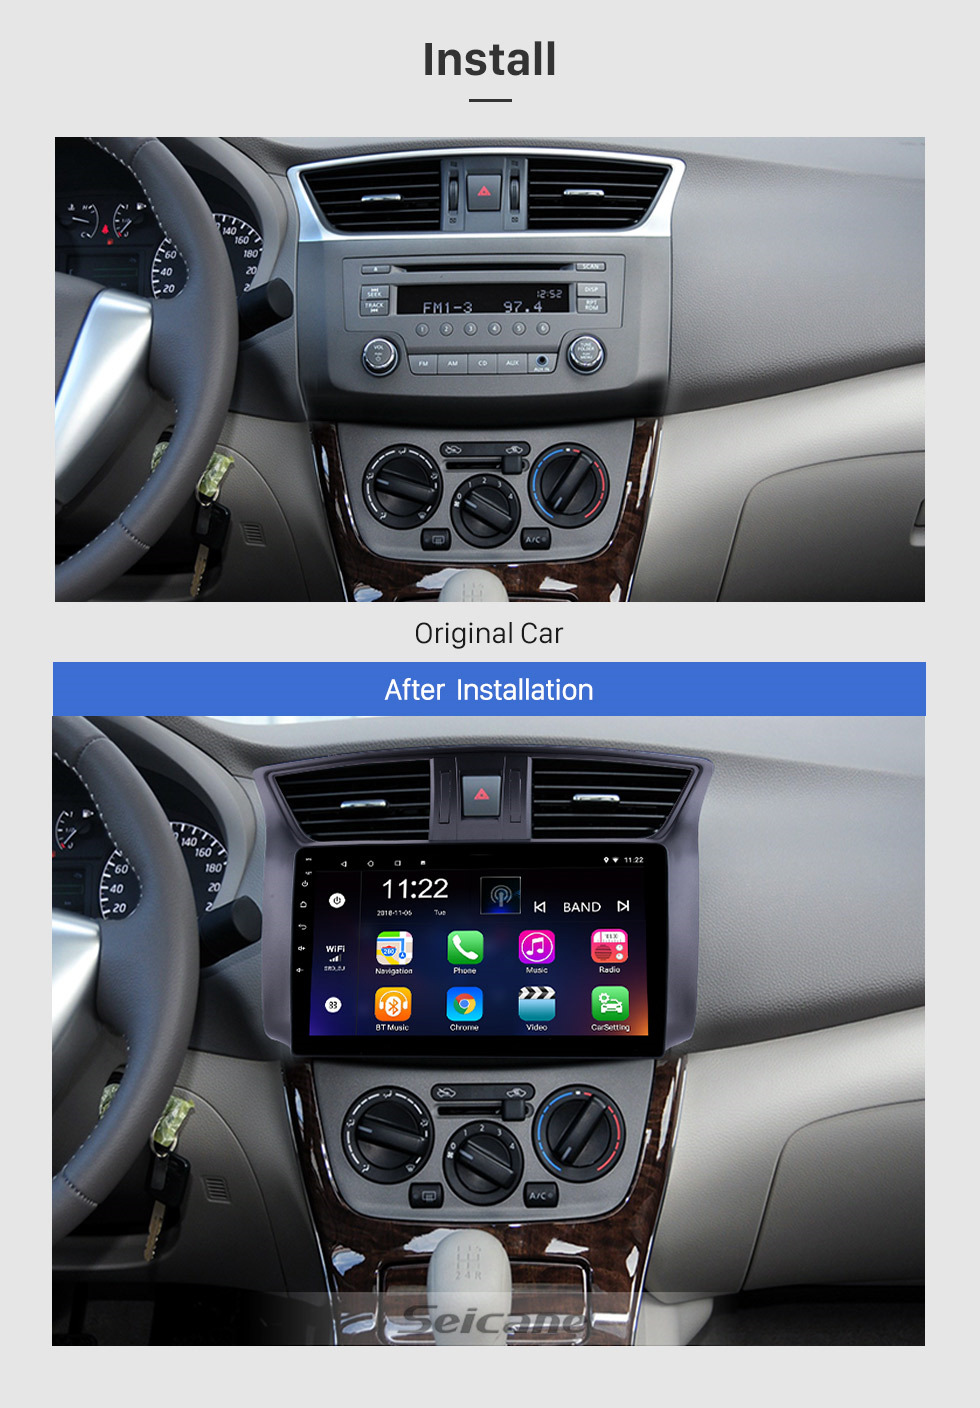 Seicane 10.1 inch 2012-2016 Nissan Sylphy Android 8.1 HD Touchscreen GPS Navi head unit Radio USB Bluetooth Support WIFI Mirror Link DVR OBD2 TPMS Aux